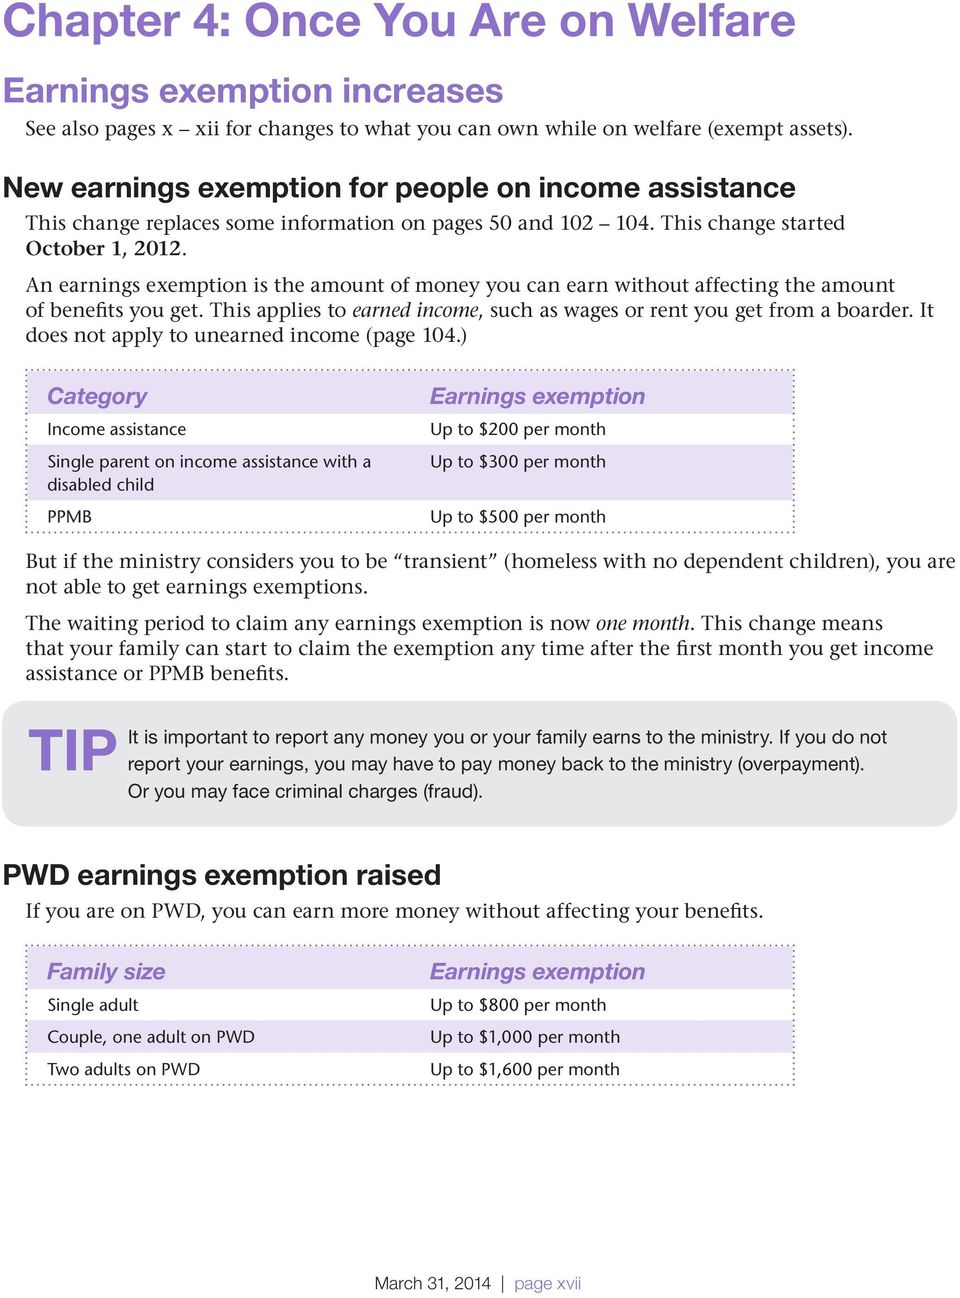 An earnings exemption is the amount of money you can earn without affecting the amount of benefits you get. This applies to earned income, such as wages or rent you get from a boarder.